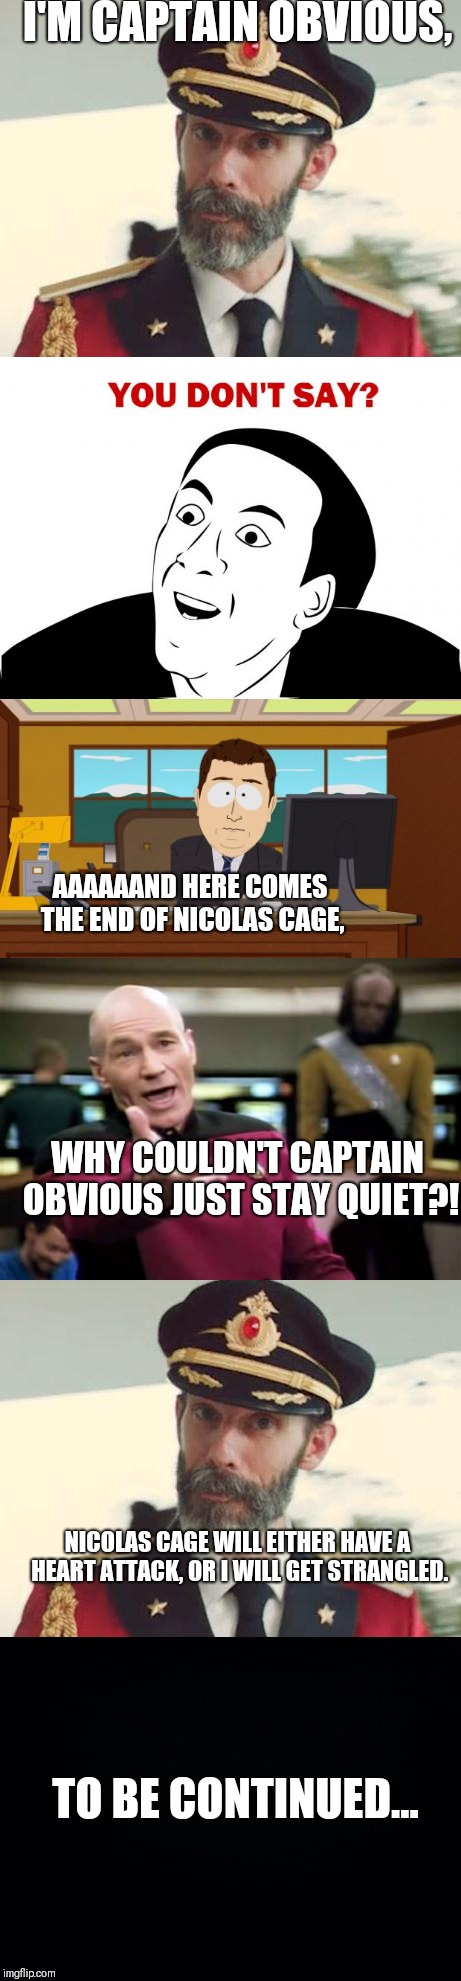 The memes collaborating. | I'M CAPTAIN OBVIOUS, AAAAAAND HERE COMES THE END OF NICOLAS CAGE, WHY COULDN'T CAPTAIN OBVIOUS JUST STAY QUIET?! NICOLAS CAGE WILL EITHER HA | image tagged in captain obvious,you don't say,aaaaand its gone,picard wtf,to be continued | made w/ Imgflip meme maker